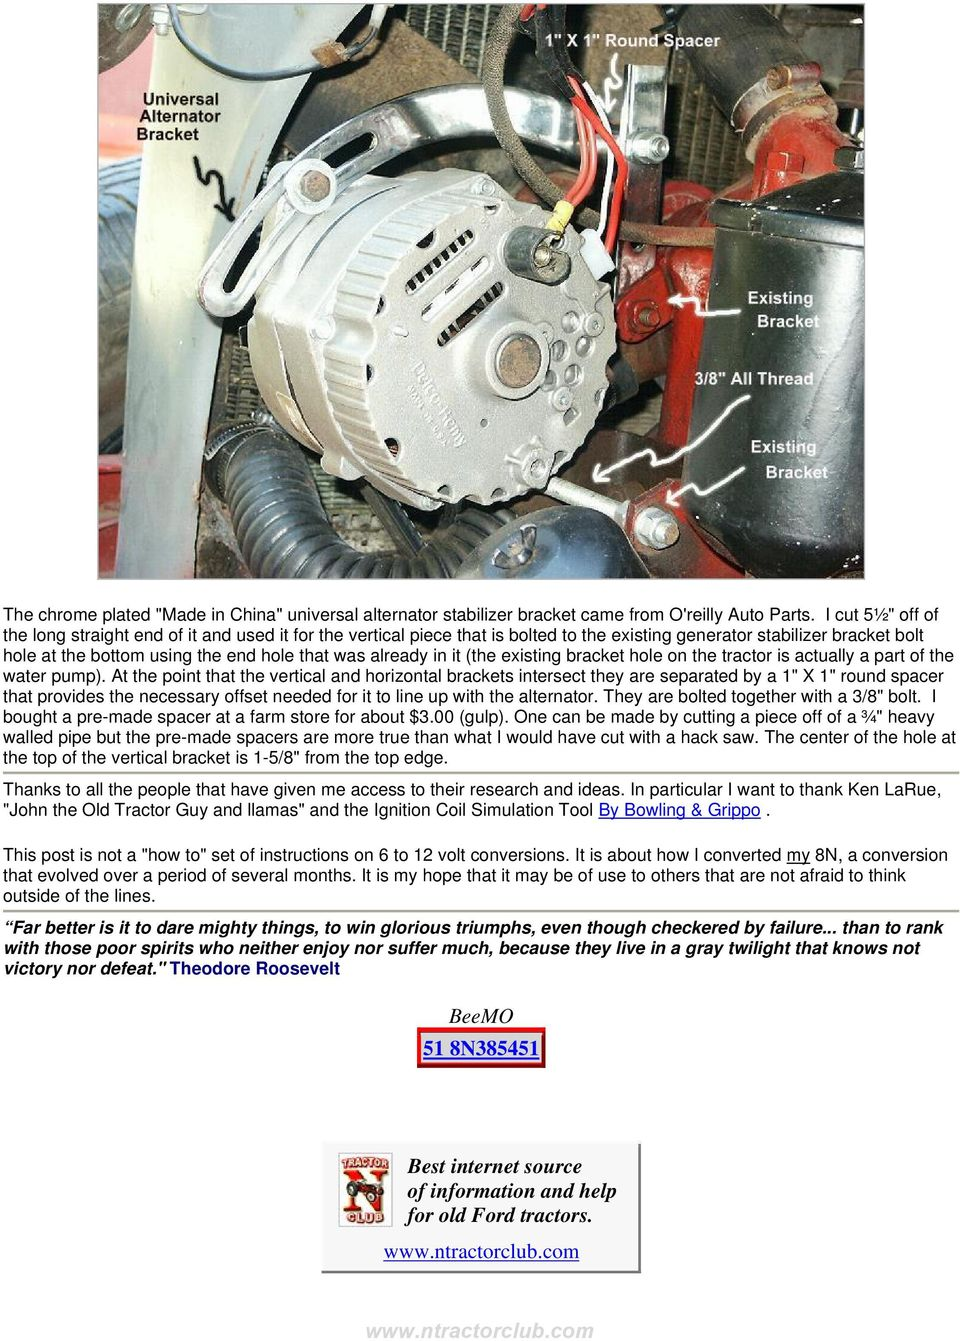 51 Ford 8n 6 To 12 Volt Conversion Side Mount Distributor Pdf Wiring Diagram Besides Tractor In It The Existing Bracket Hole On Is Actually A Part Of